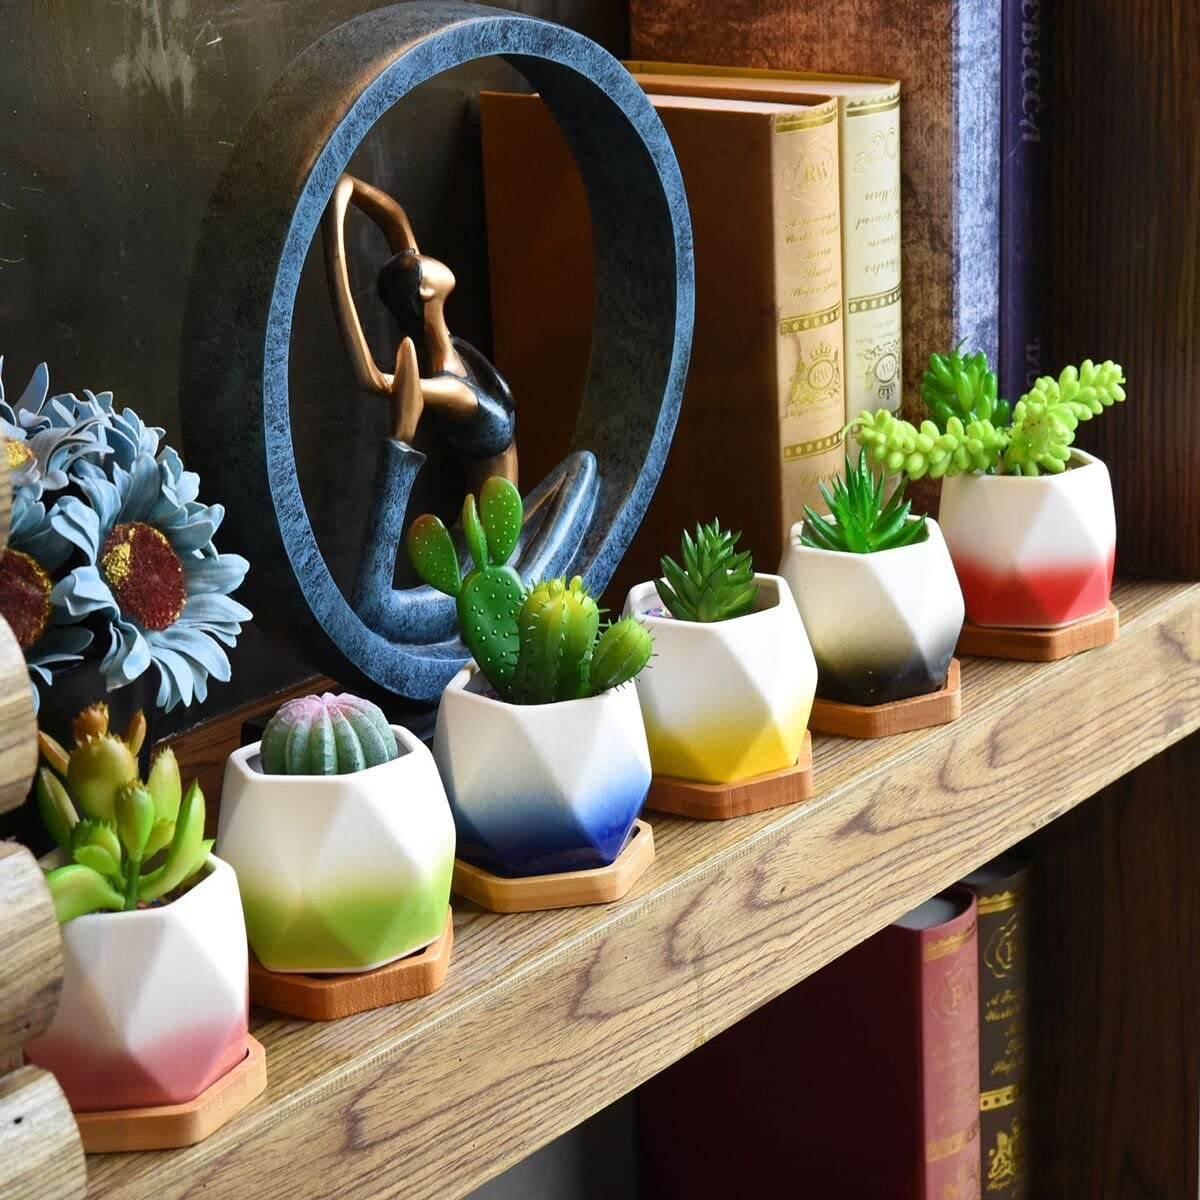 HOMENOTE 2.75 inch Succulent Planter Set with Drainage Hole Small Plant Pots for Succulents Plants(Pack of 3